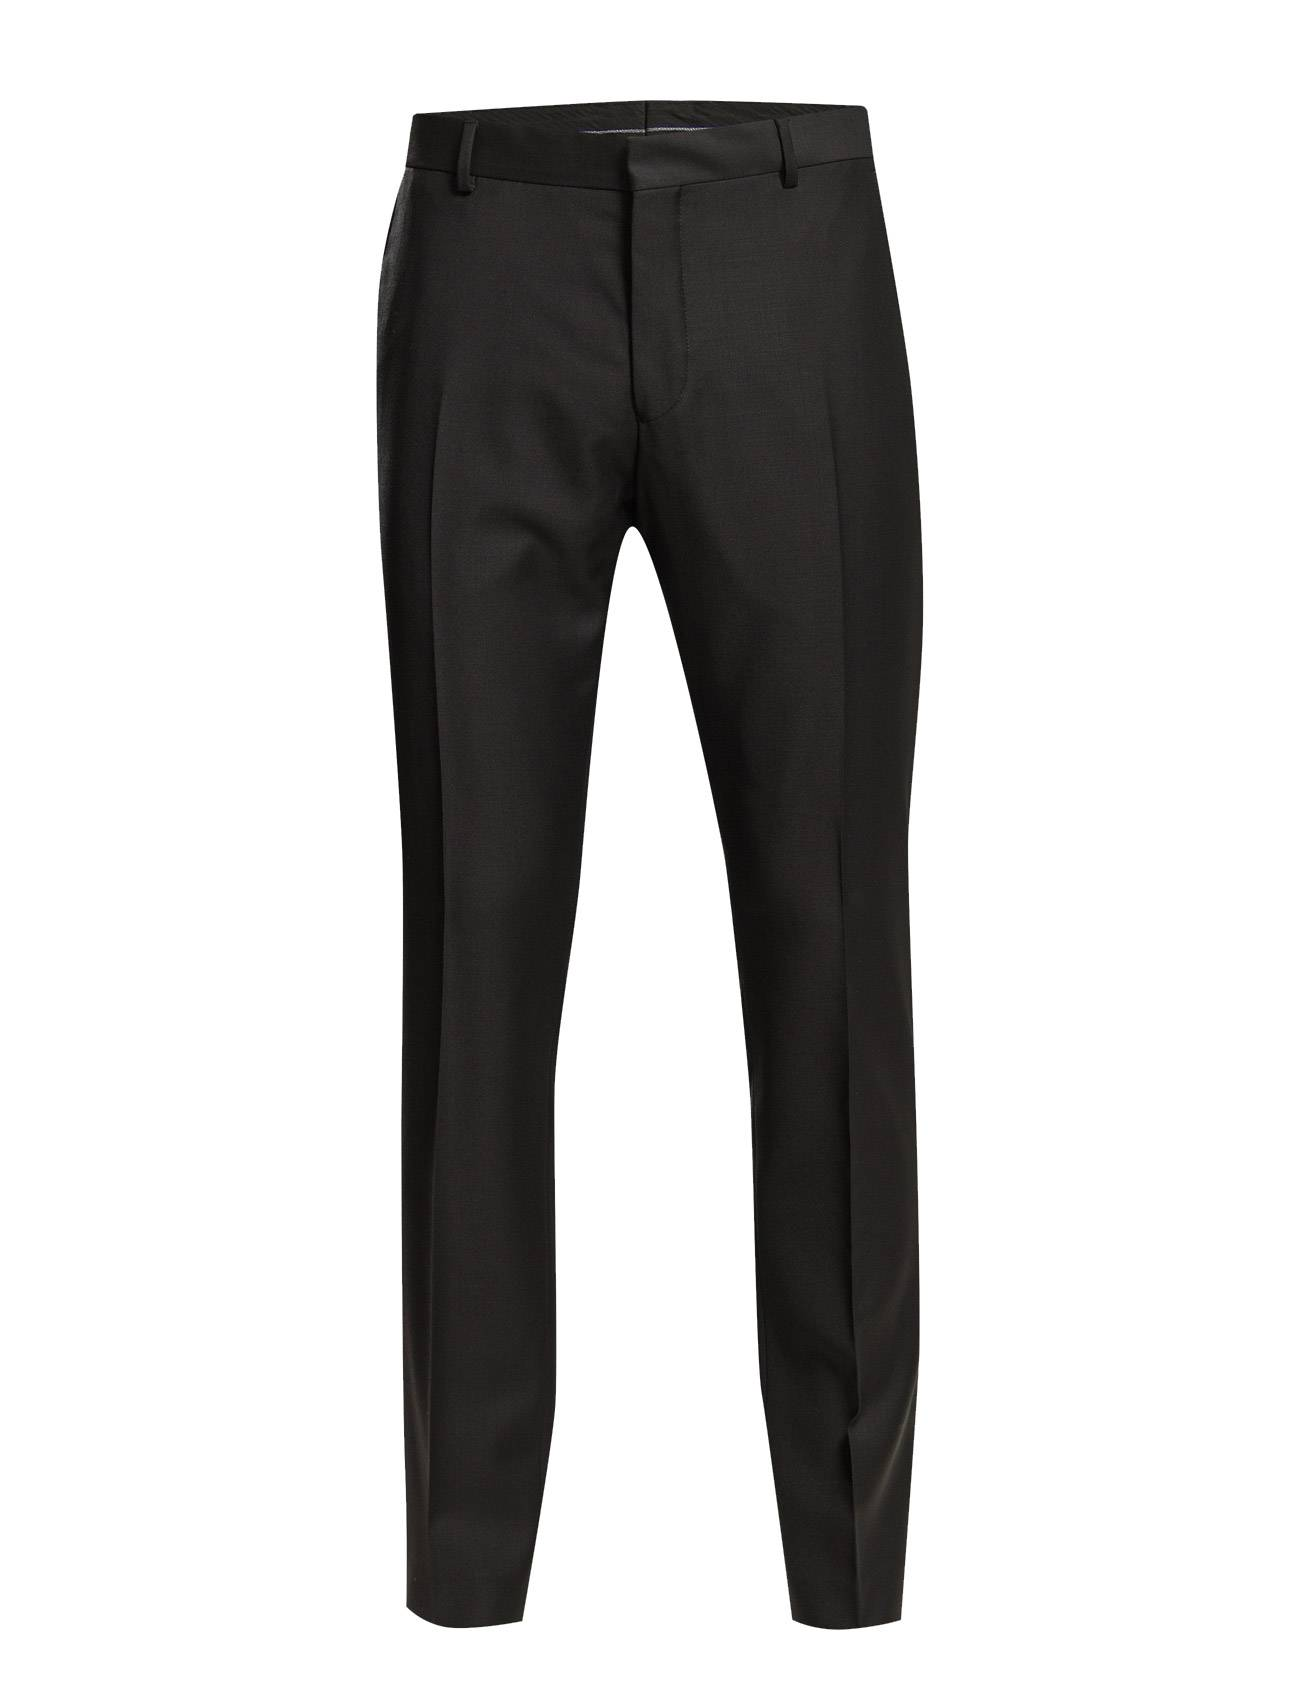 Selected Homme Shdone-Myloram5 Black Trouser Noos